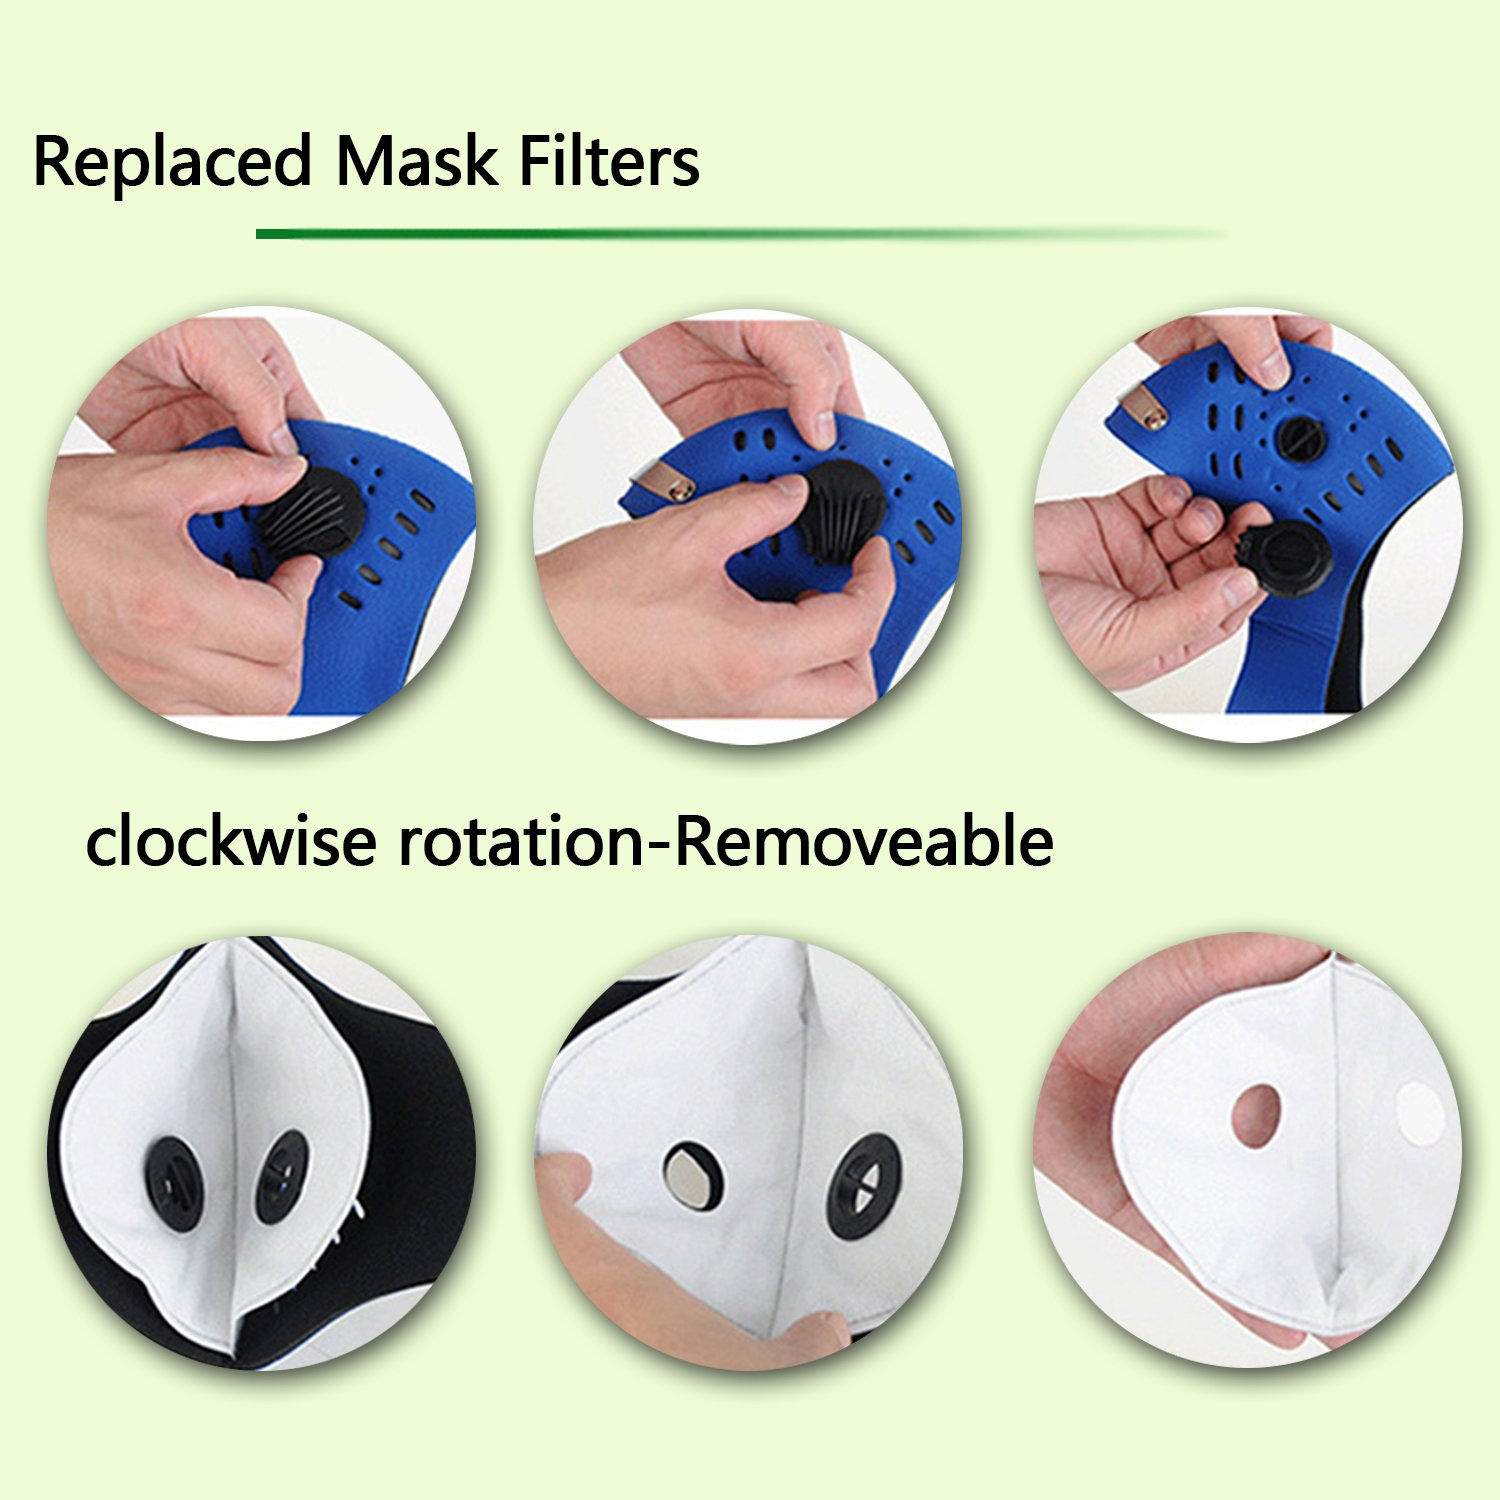 Dustproof Masks - 4 Pack Activated Carbon Dust Mask with Extra Filter Cotton Sheet and Valves for Exhaust Gas, Pollen Allergy, PM2.5, Running, Cycling, Outdoor Activities (4 Set Black and Orange) by Novemkada (Image #5)